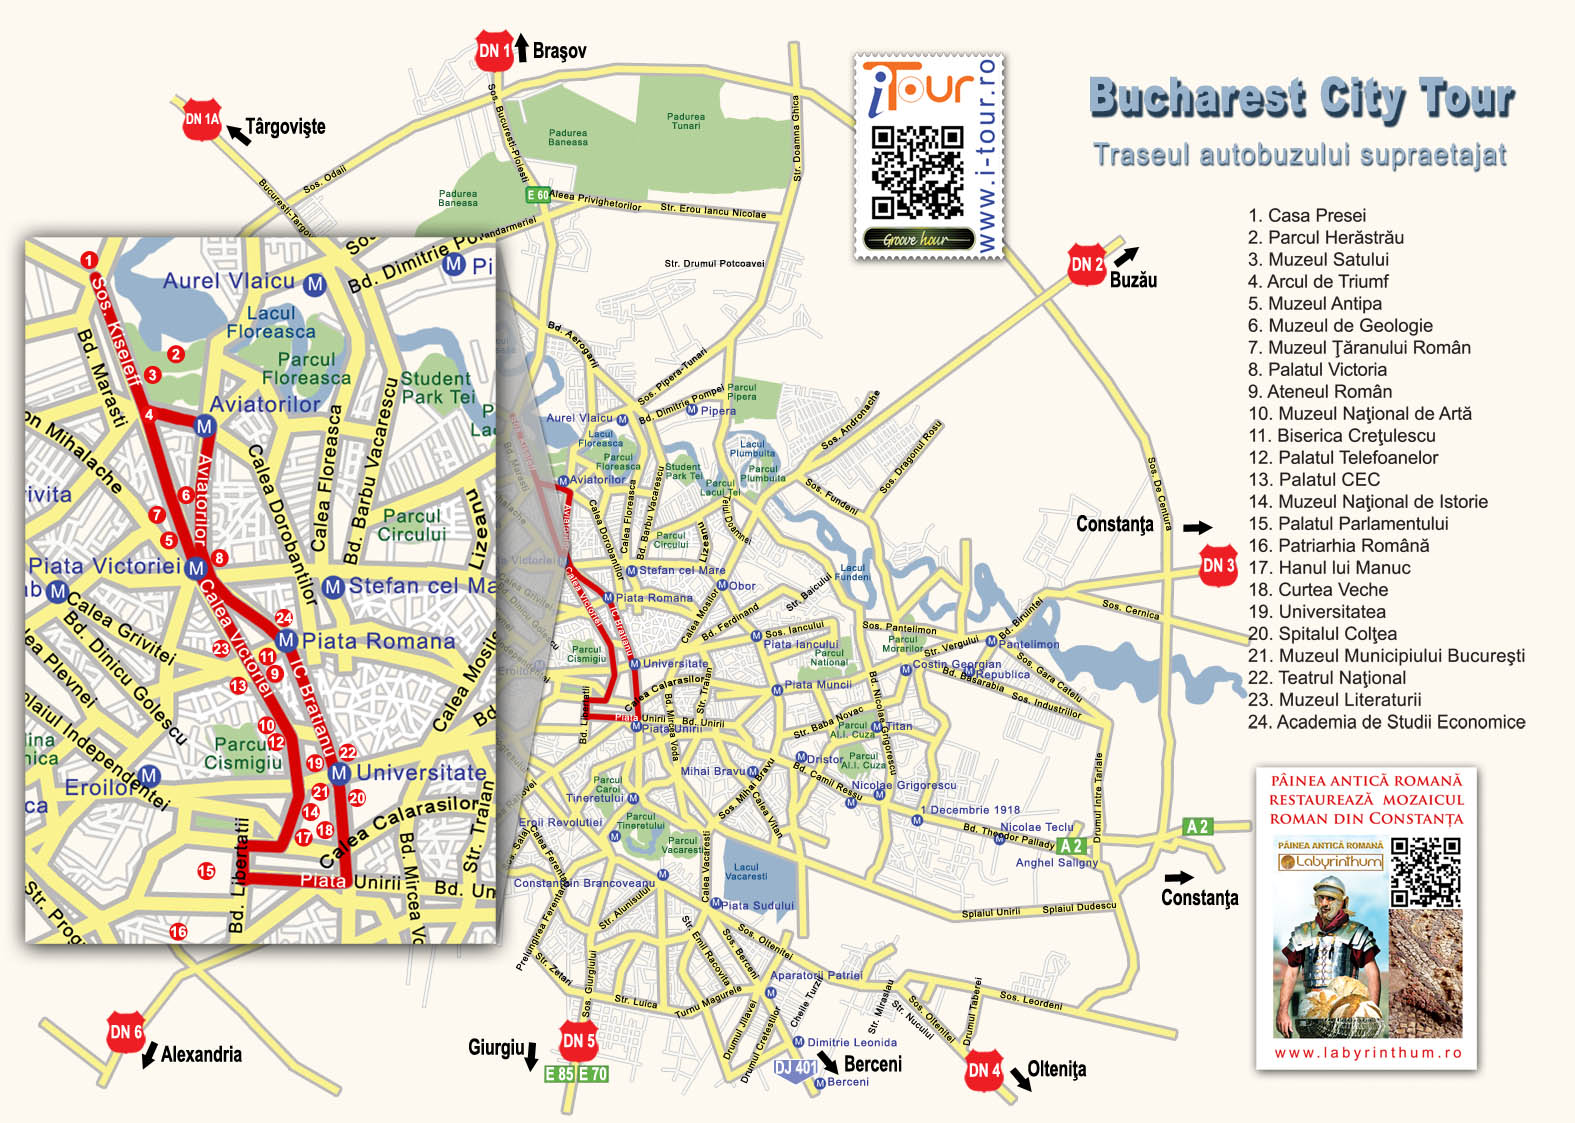 Harta i-Tour traseu Bucharest City Tour